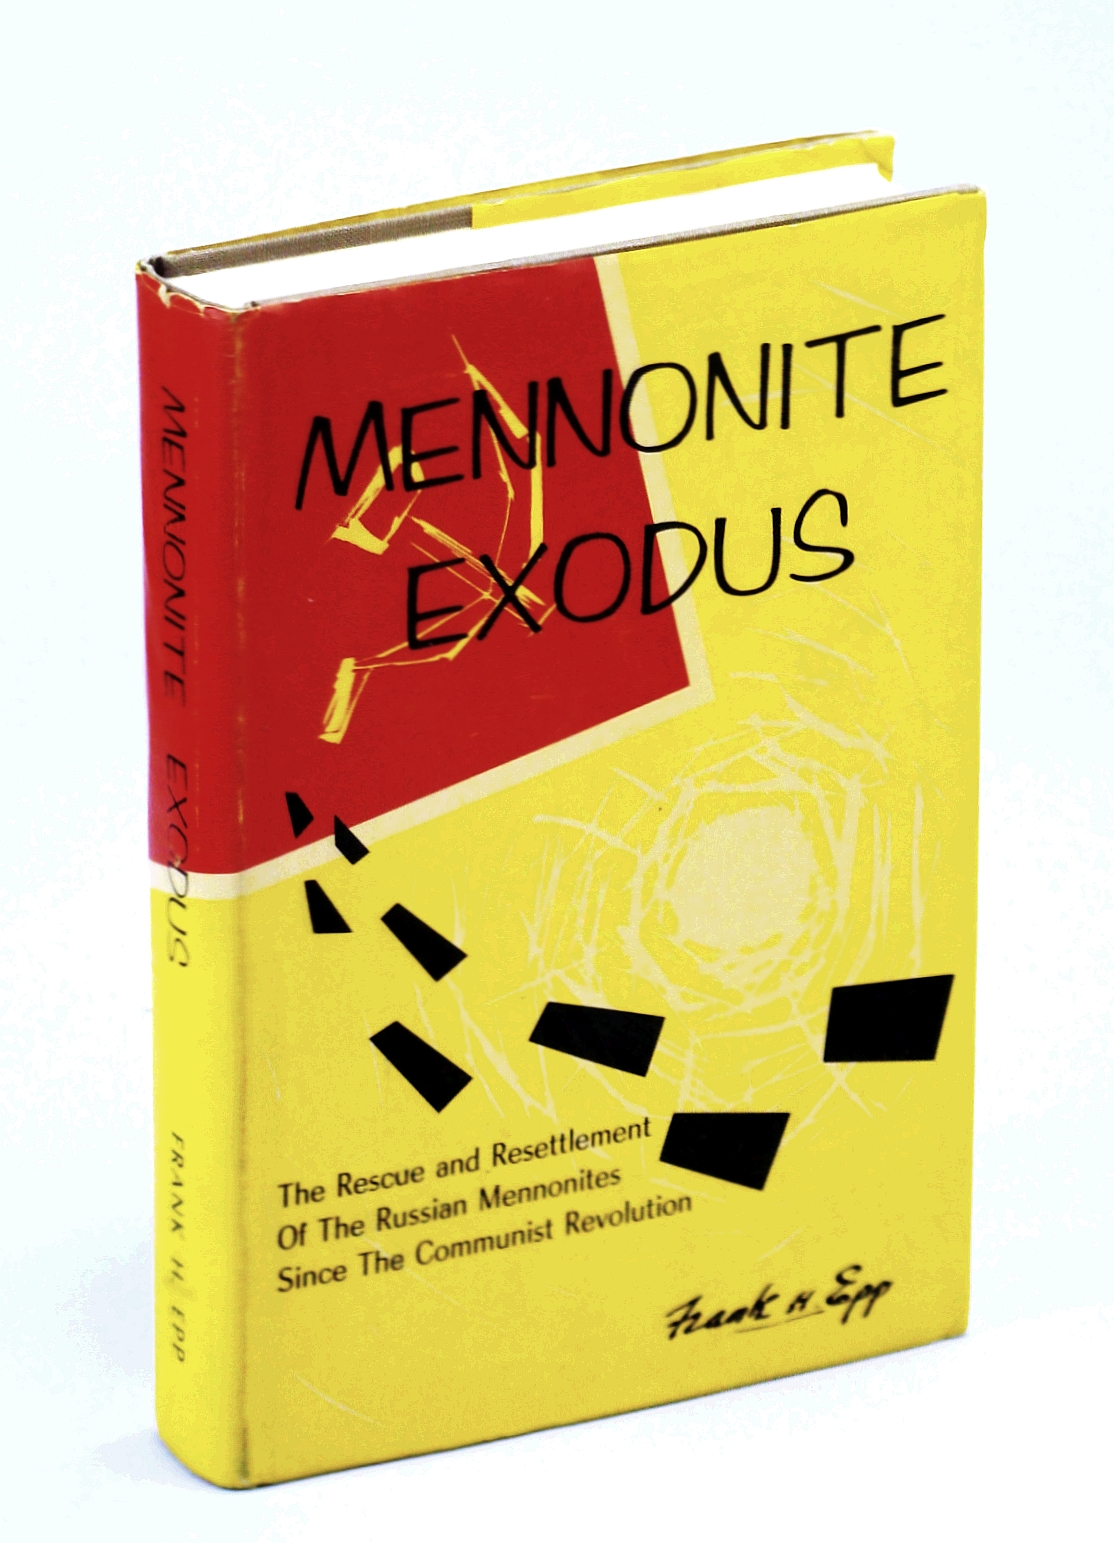 Image for Mennonite Exodus : The Rescue and Resettlement of the Russian Mennonites Since the Communist Revolution